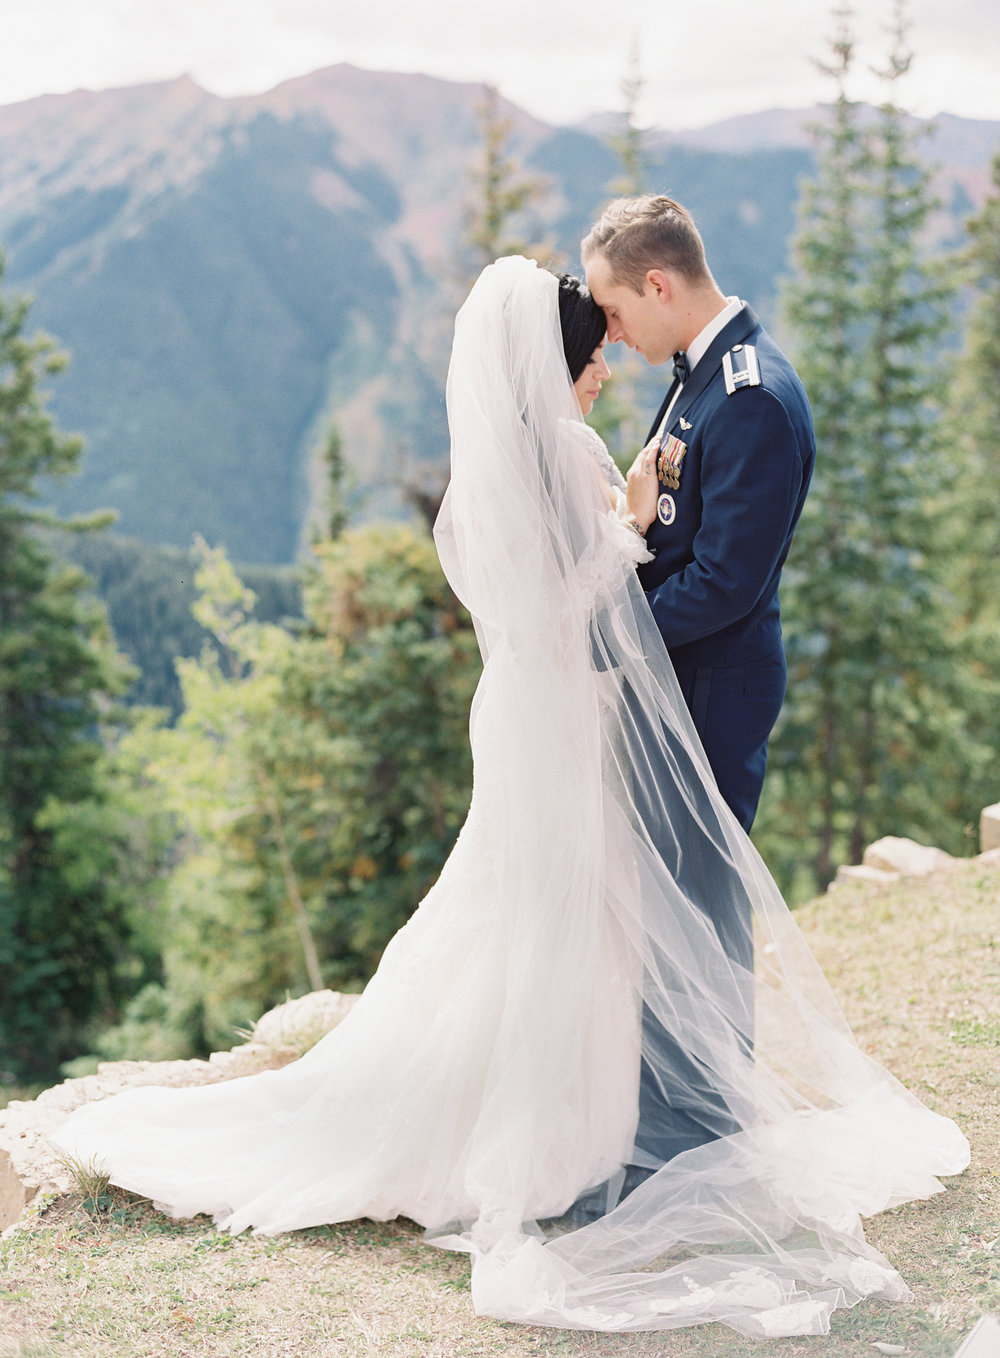 ANDY + PAUL - ASPEN, COLORADO